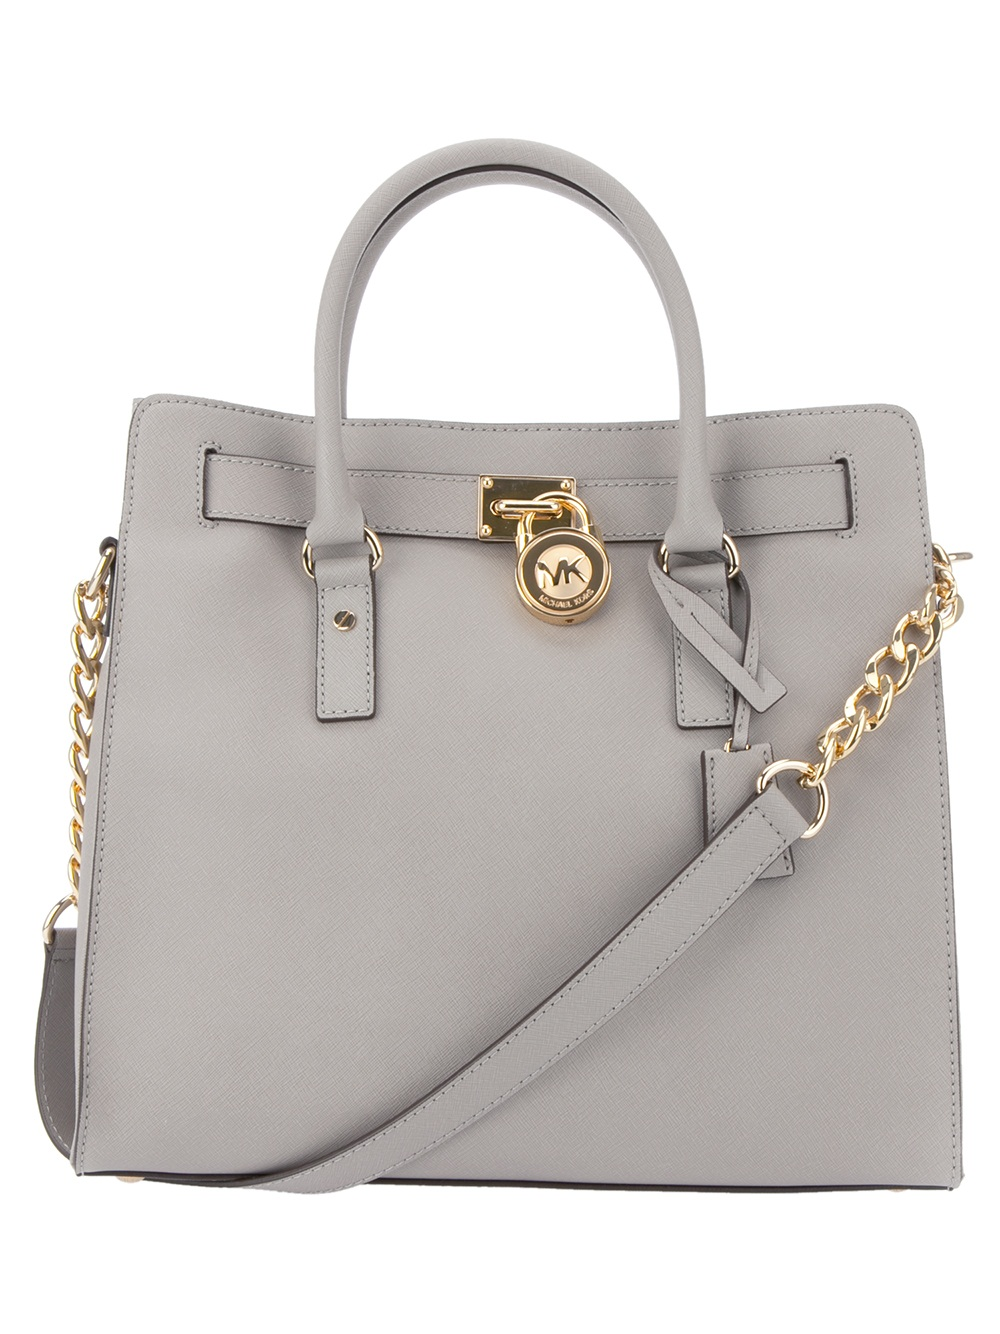 michael kors hamilton bag in gray grey lyst. Black Bedroom Furniture Sets. Home Design Ideas